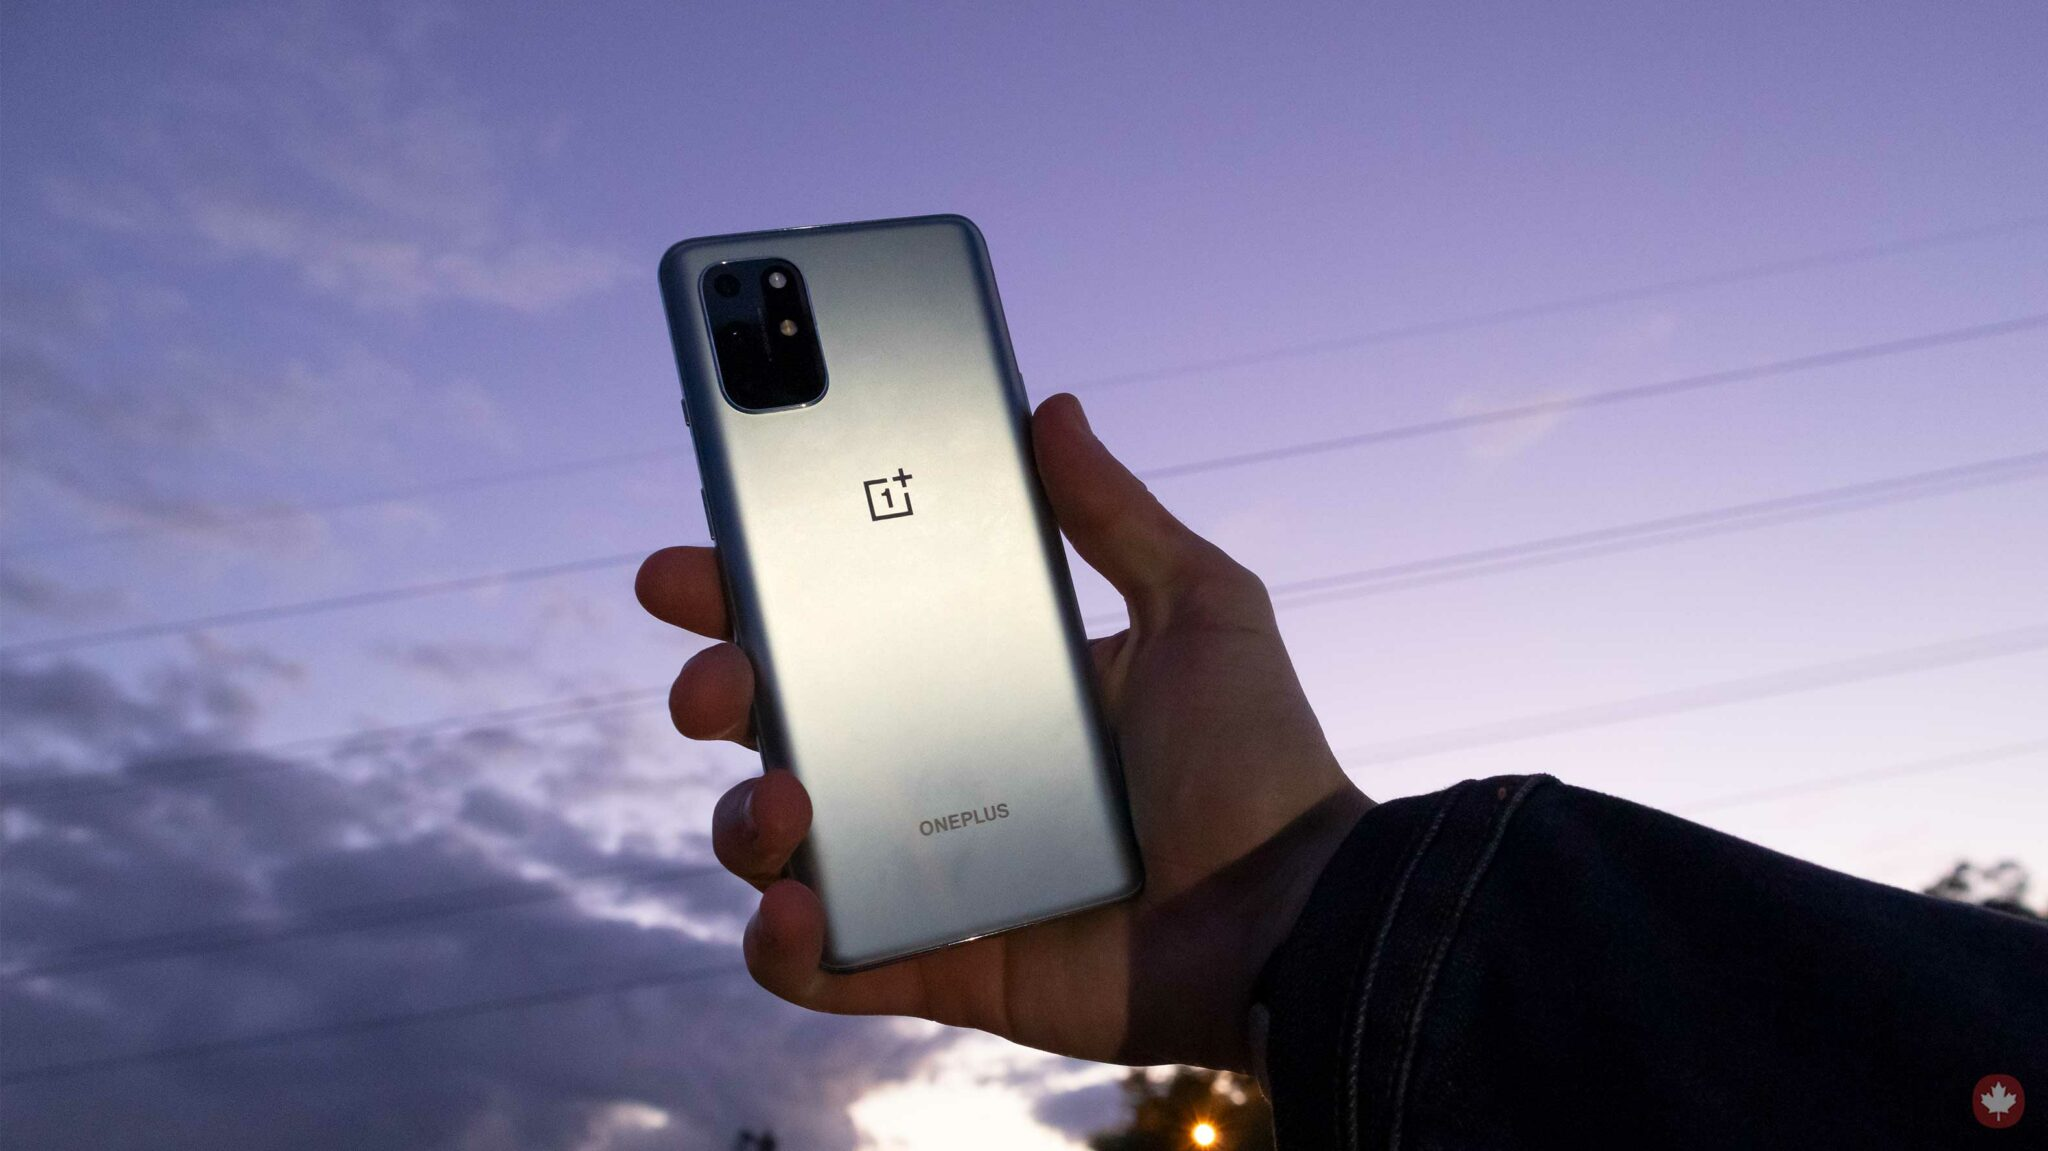 OnePlus 9, 9 Pro to feature 4,500mAh battery according to leak